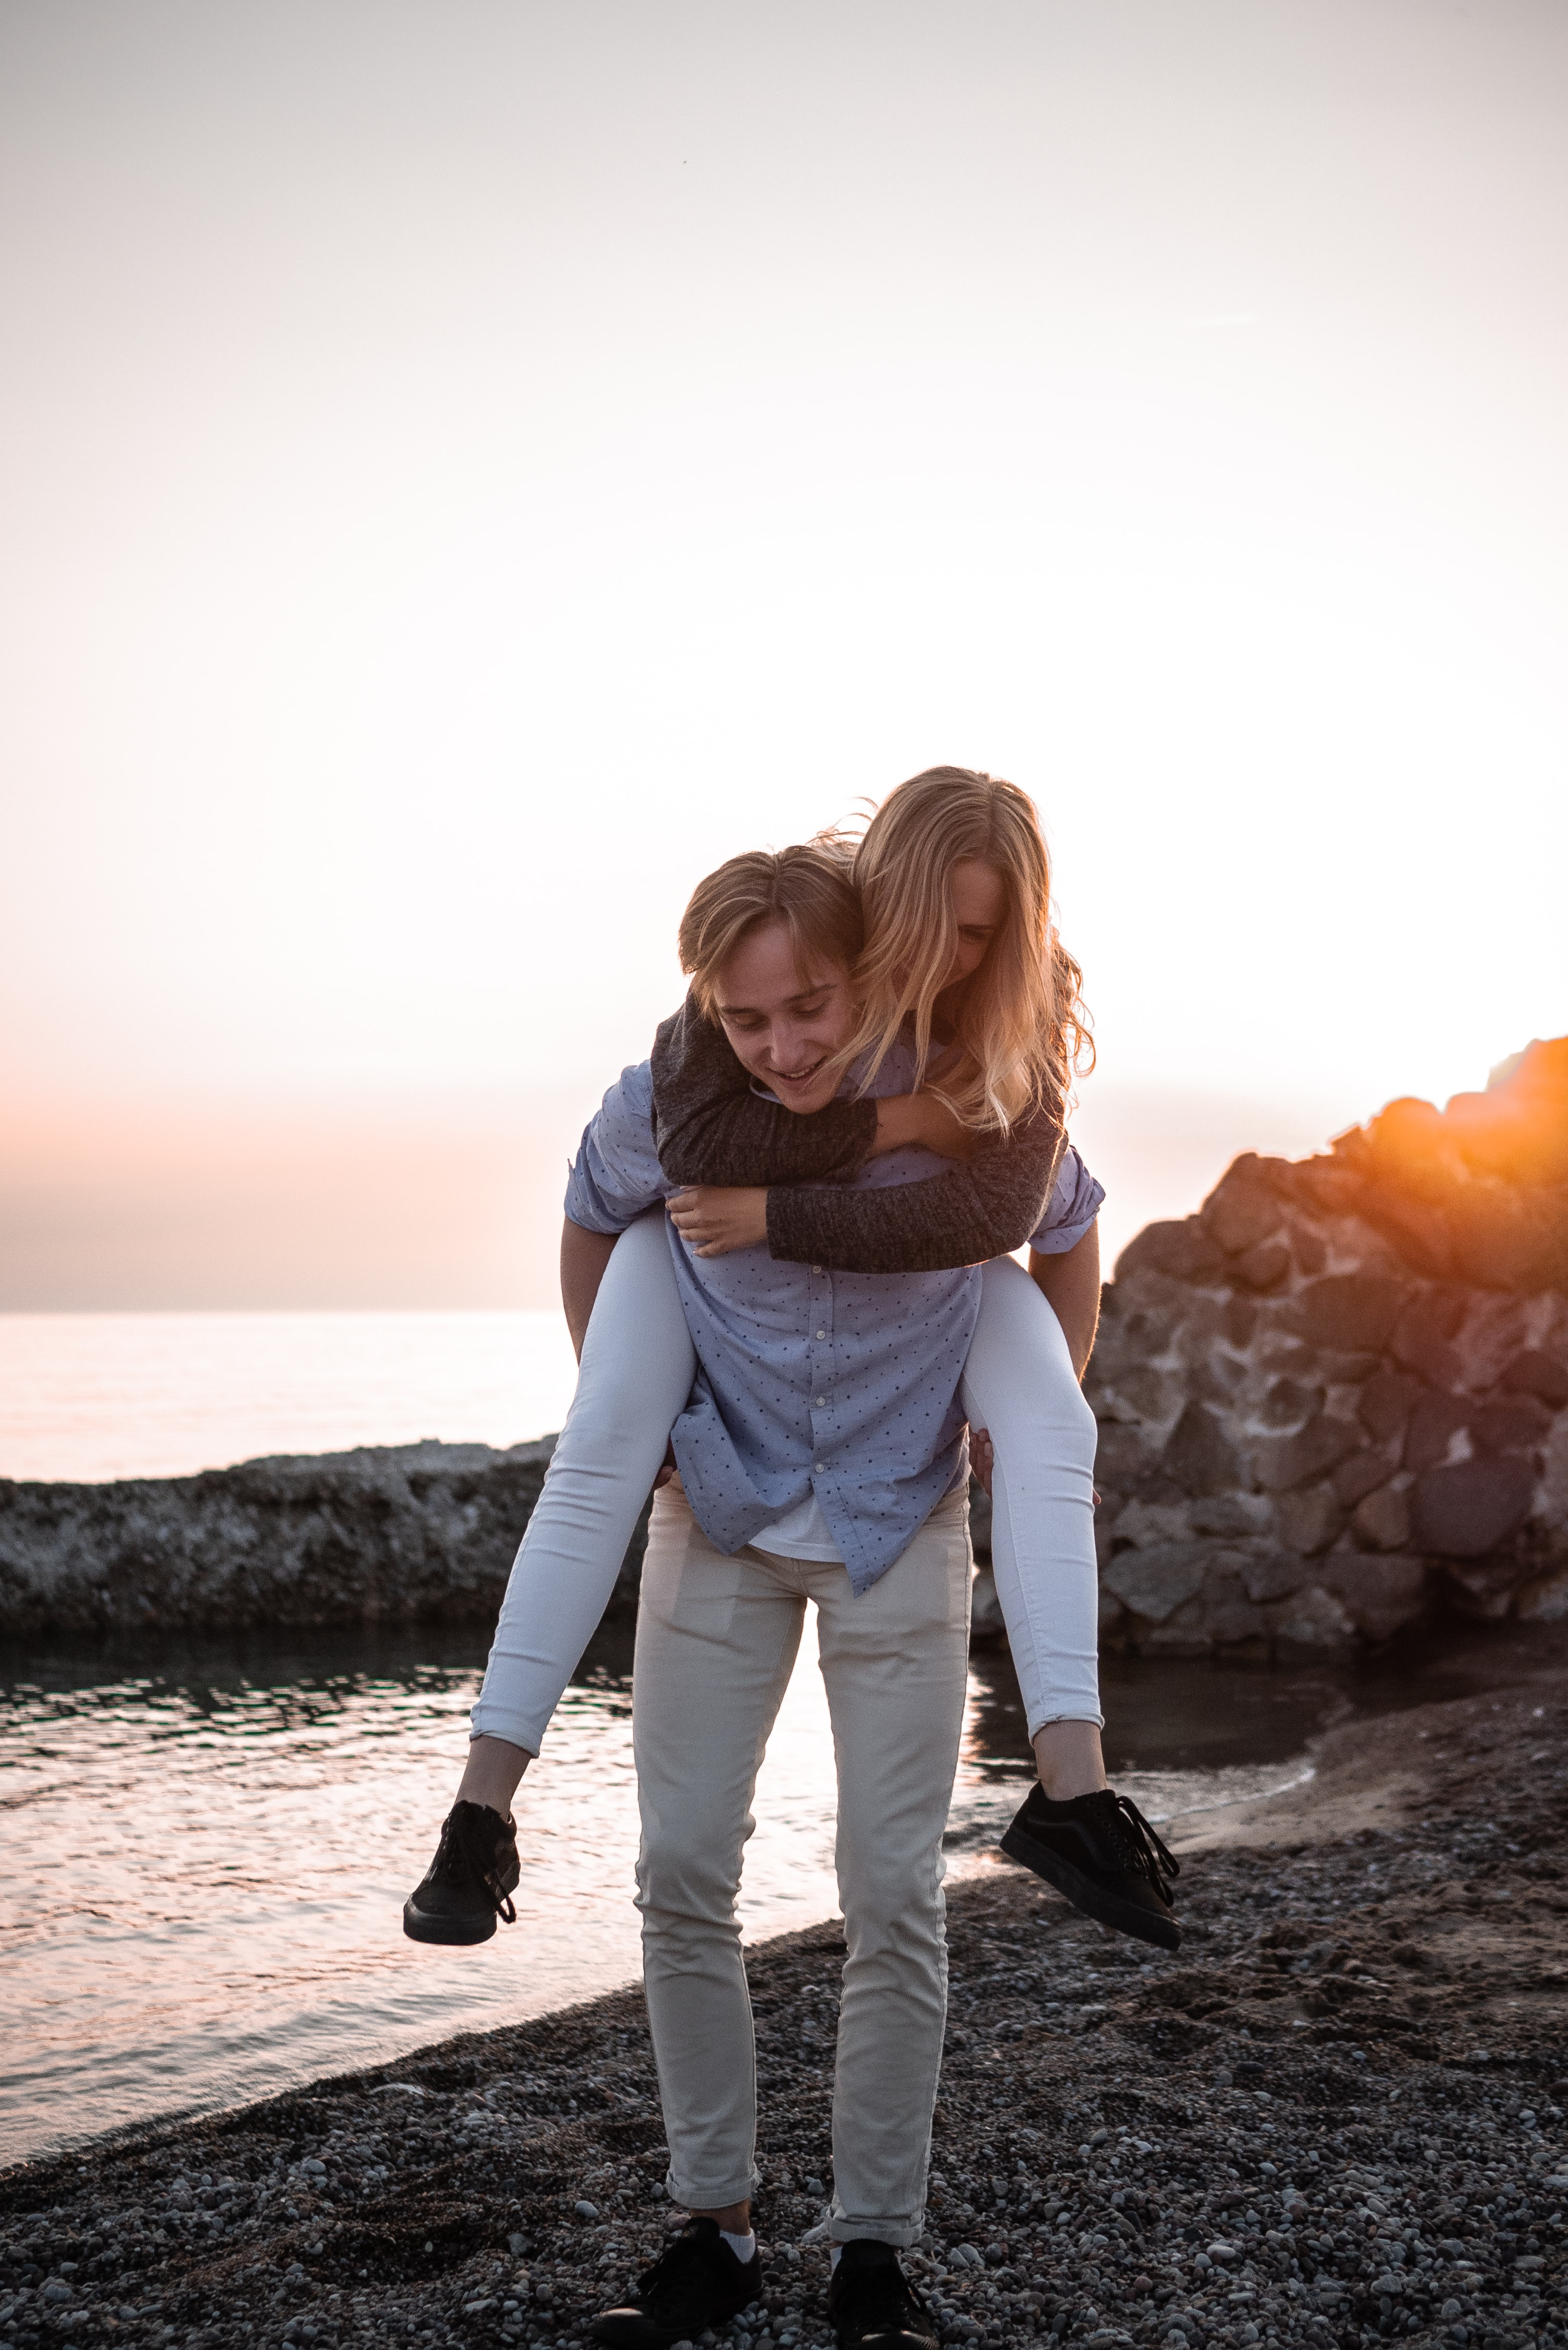 Best 500 Romantic Pictures Stunning Download Free Romantic